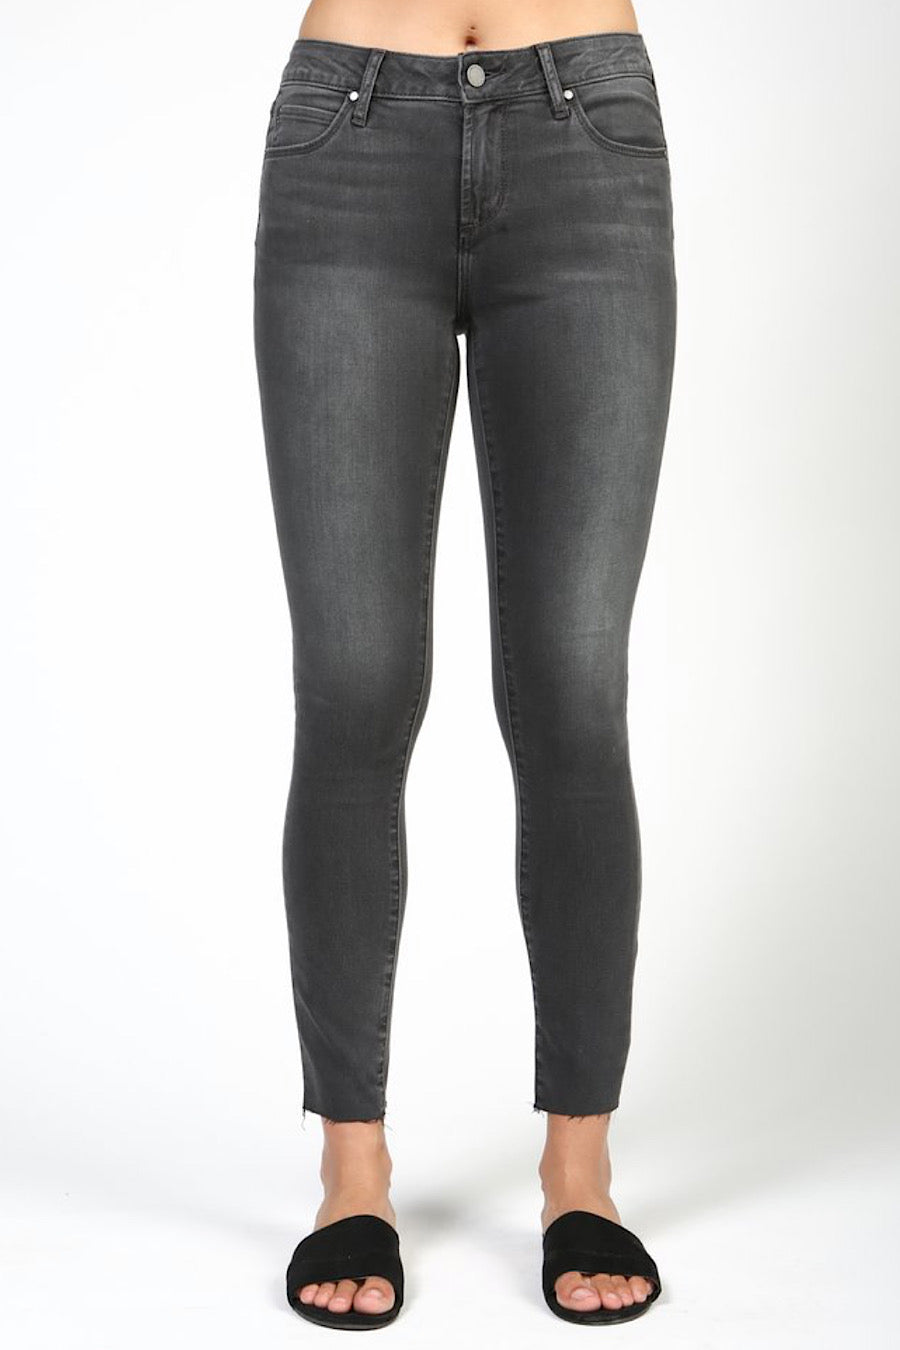 Carly Ankle Jeans in Canyon